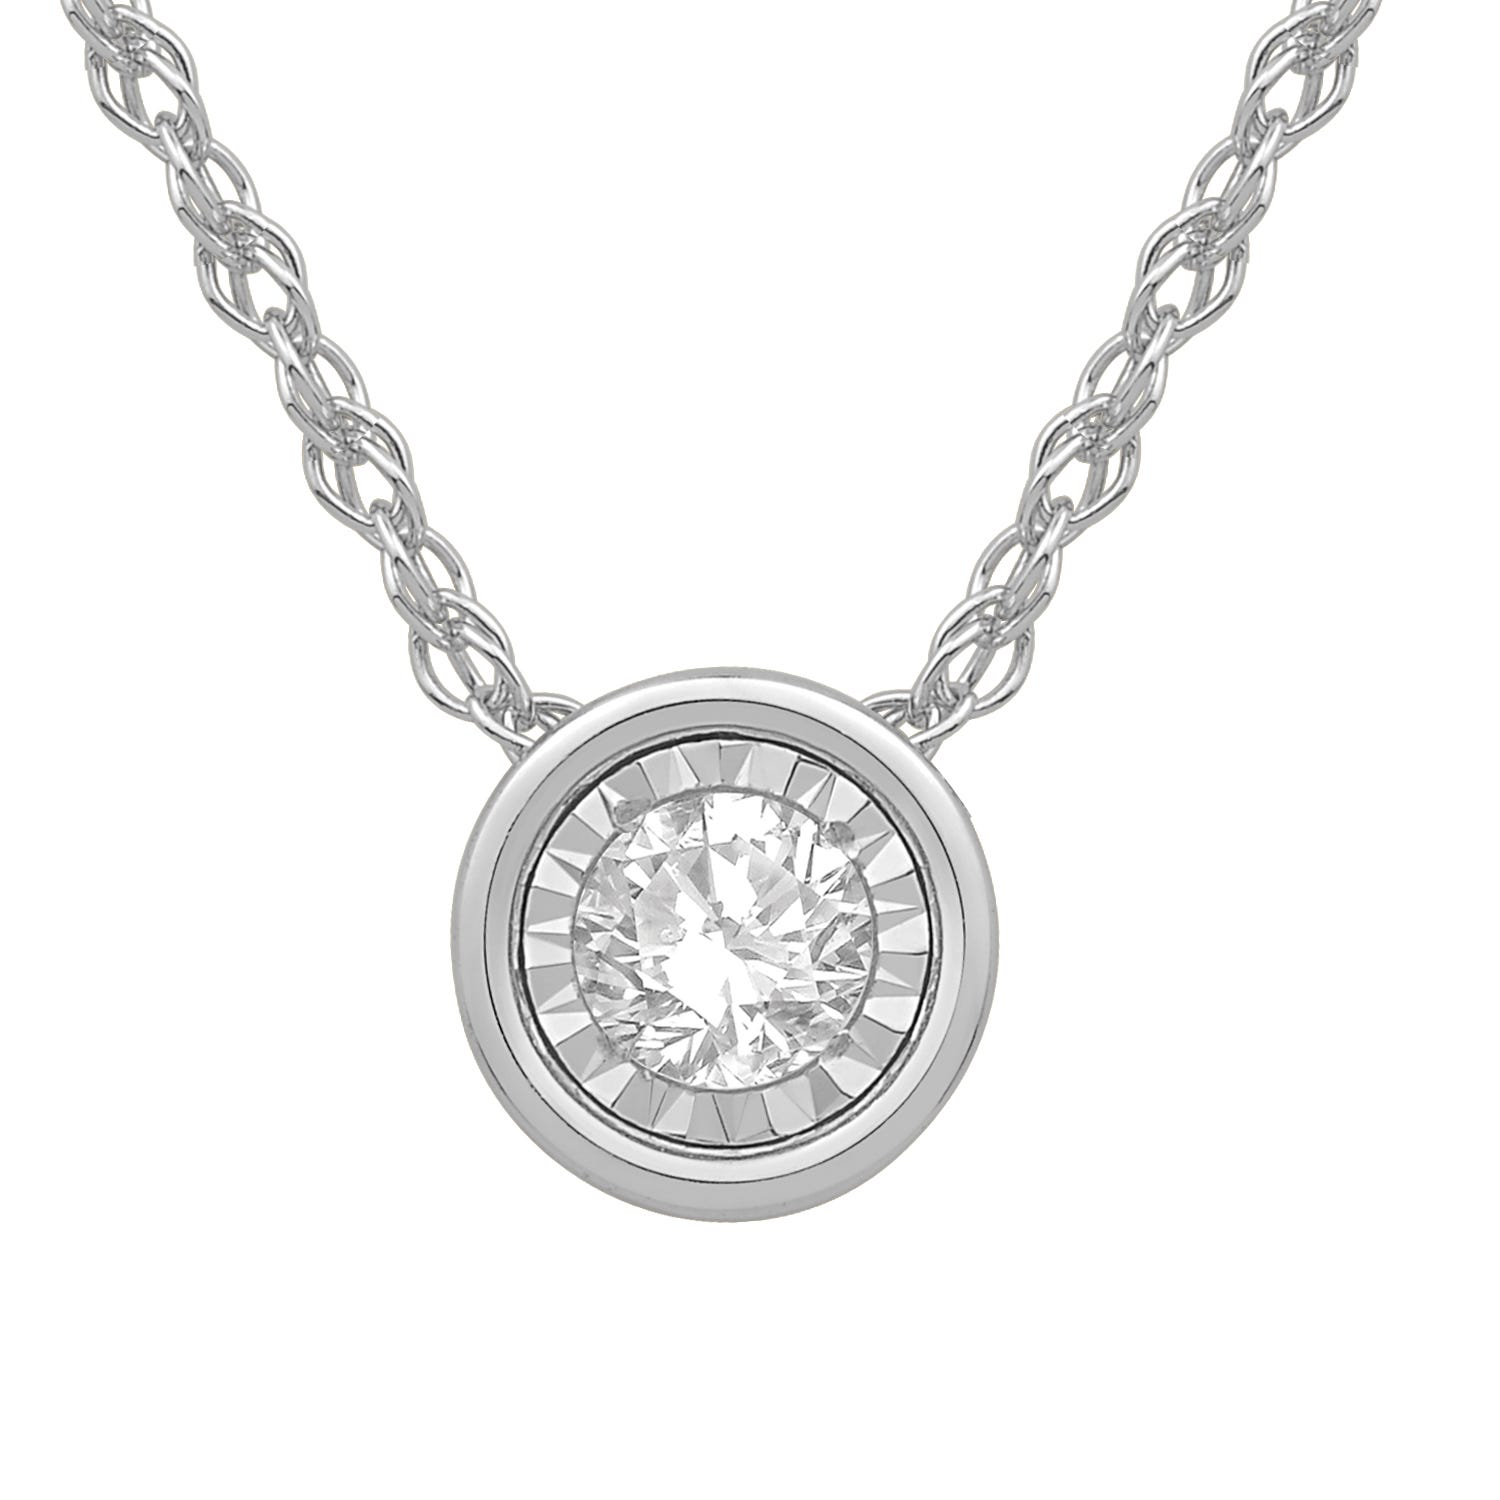 Bezel-Set Diamond 1/5ctw. (HI, I2-3) Solitaire Pendant in 10k White Gold